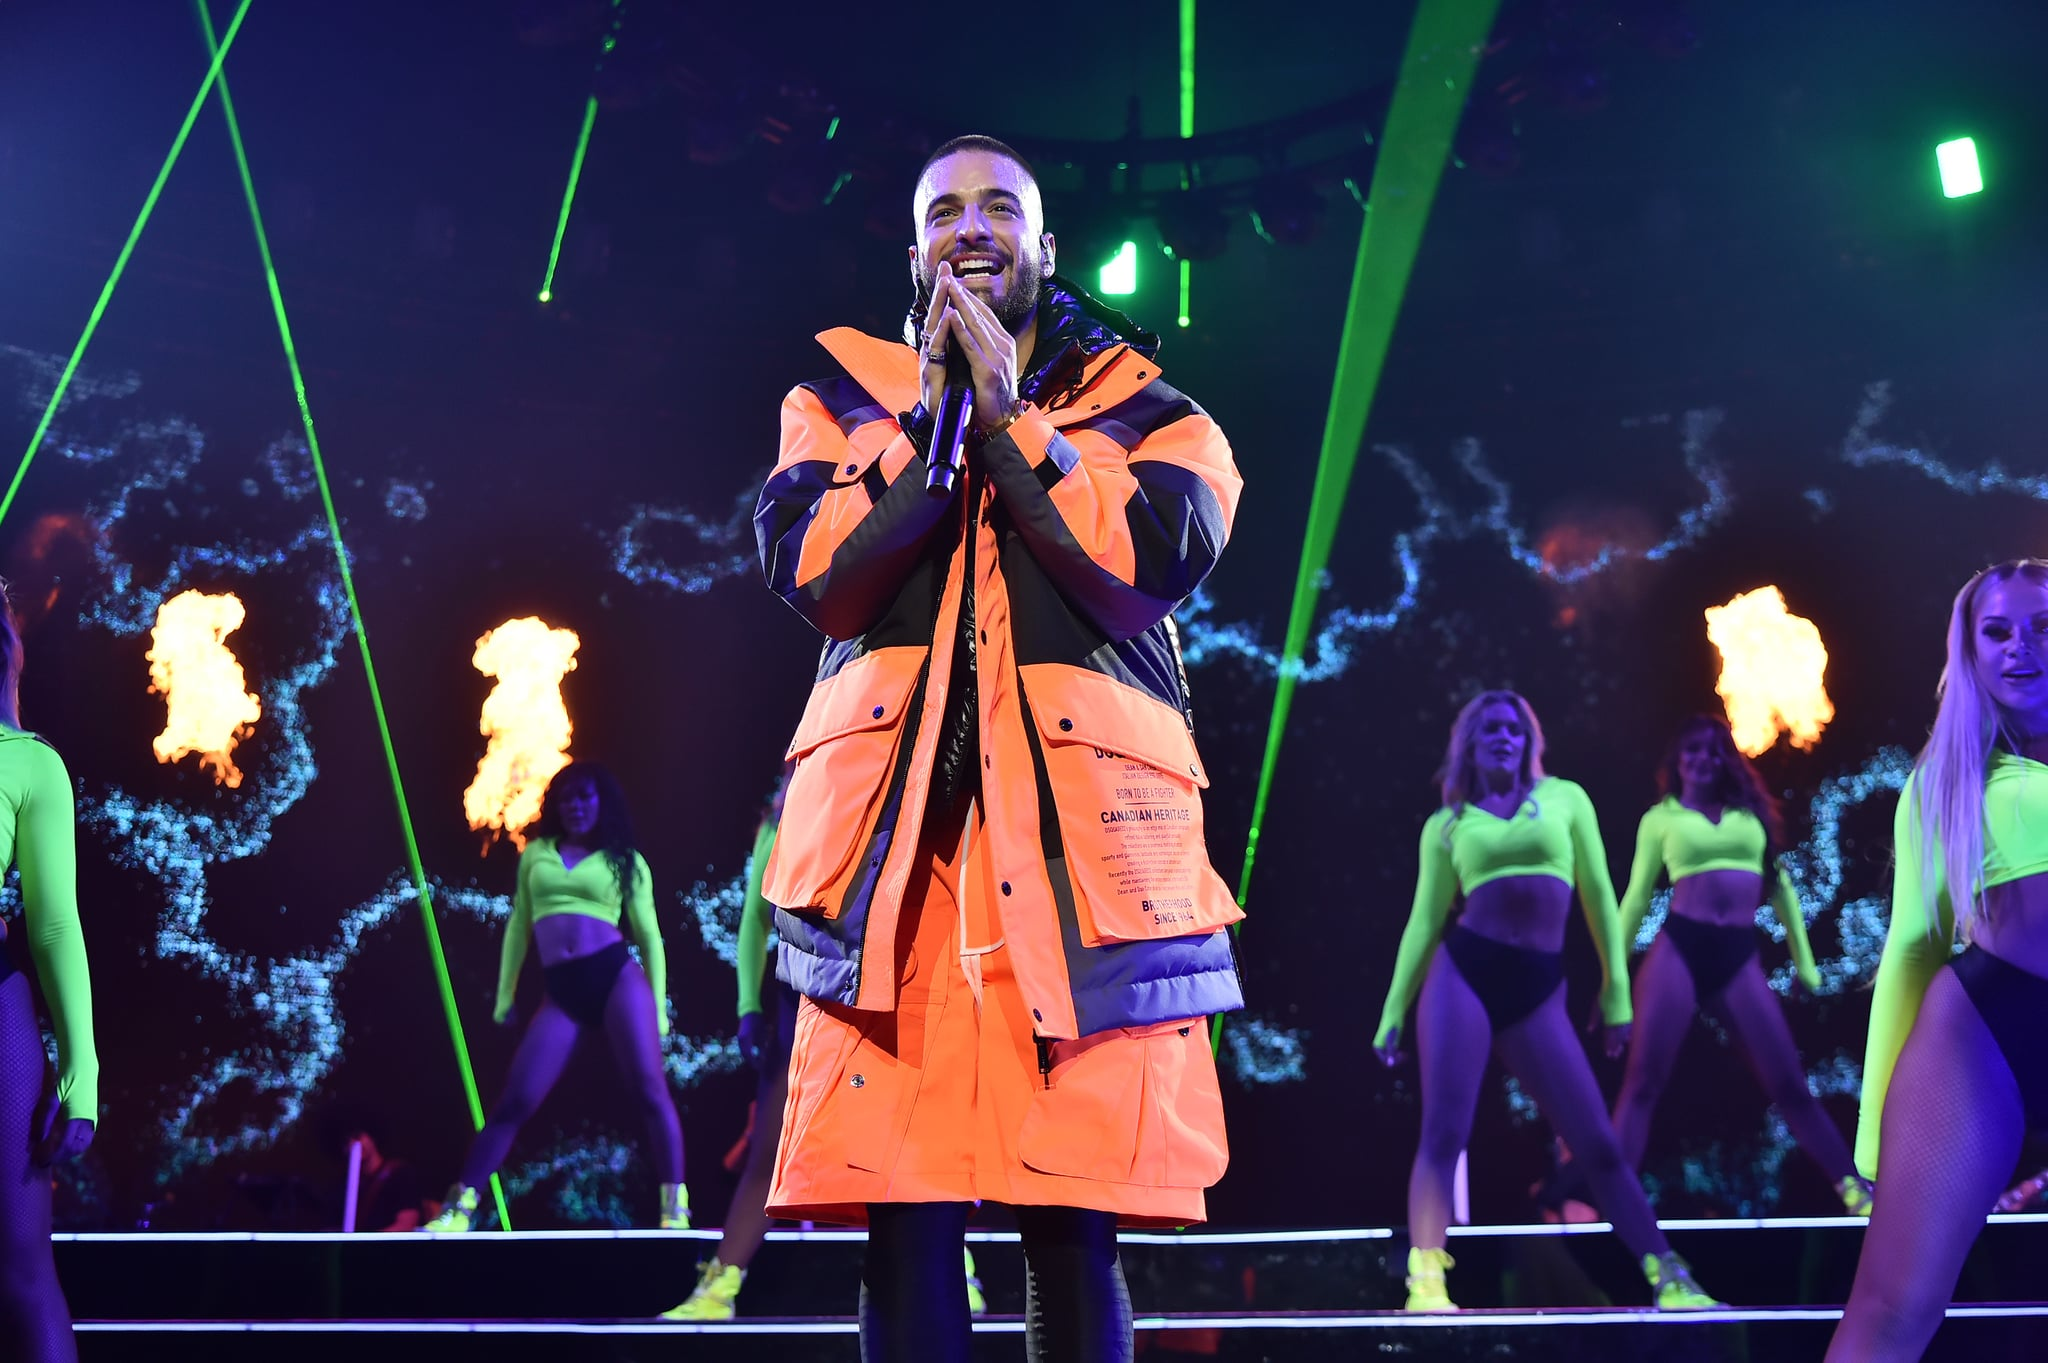 NEW YORK, NEW YORK - OCTOBER 04: Maluma performs at Madison Square Garden on October 04, 2019 in New York City. (Photo by Theo Wargo/Getty Images)